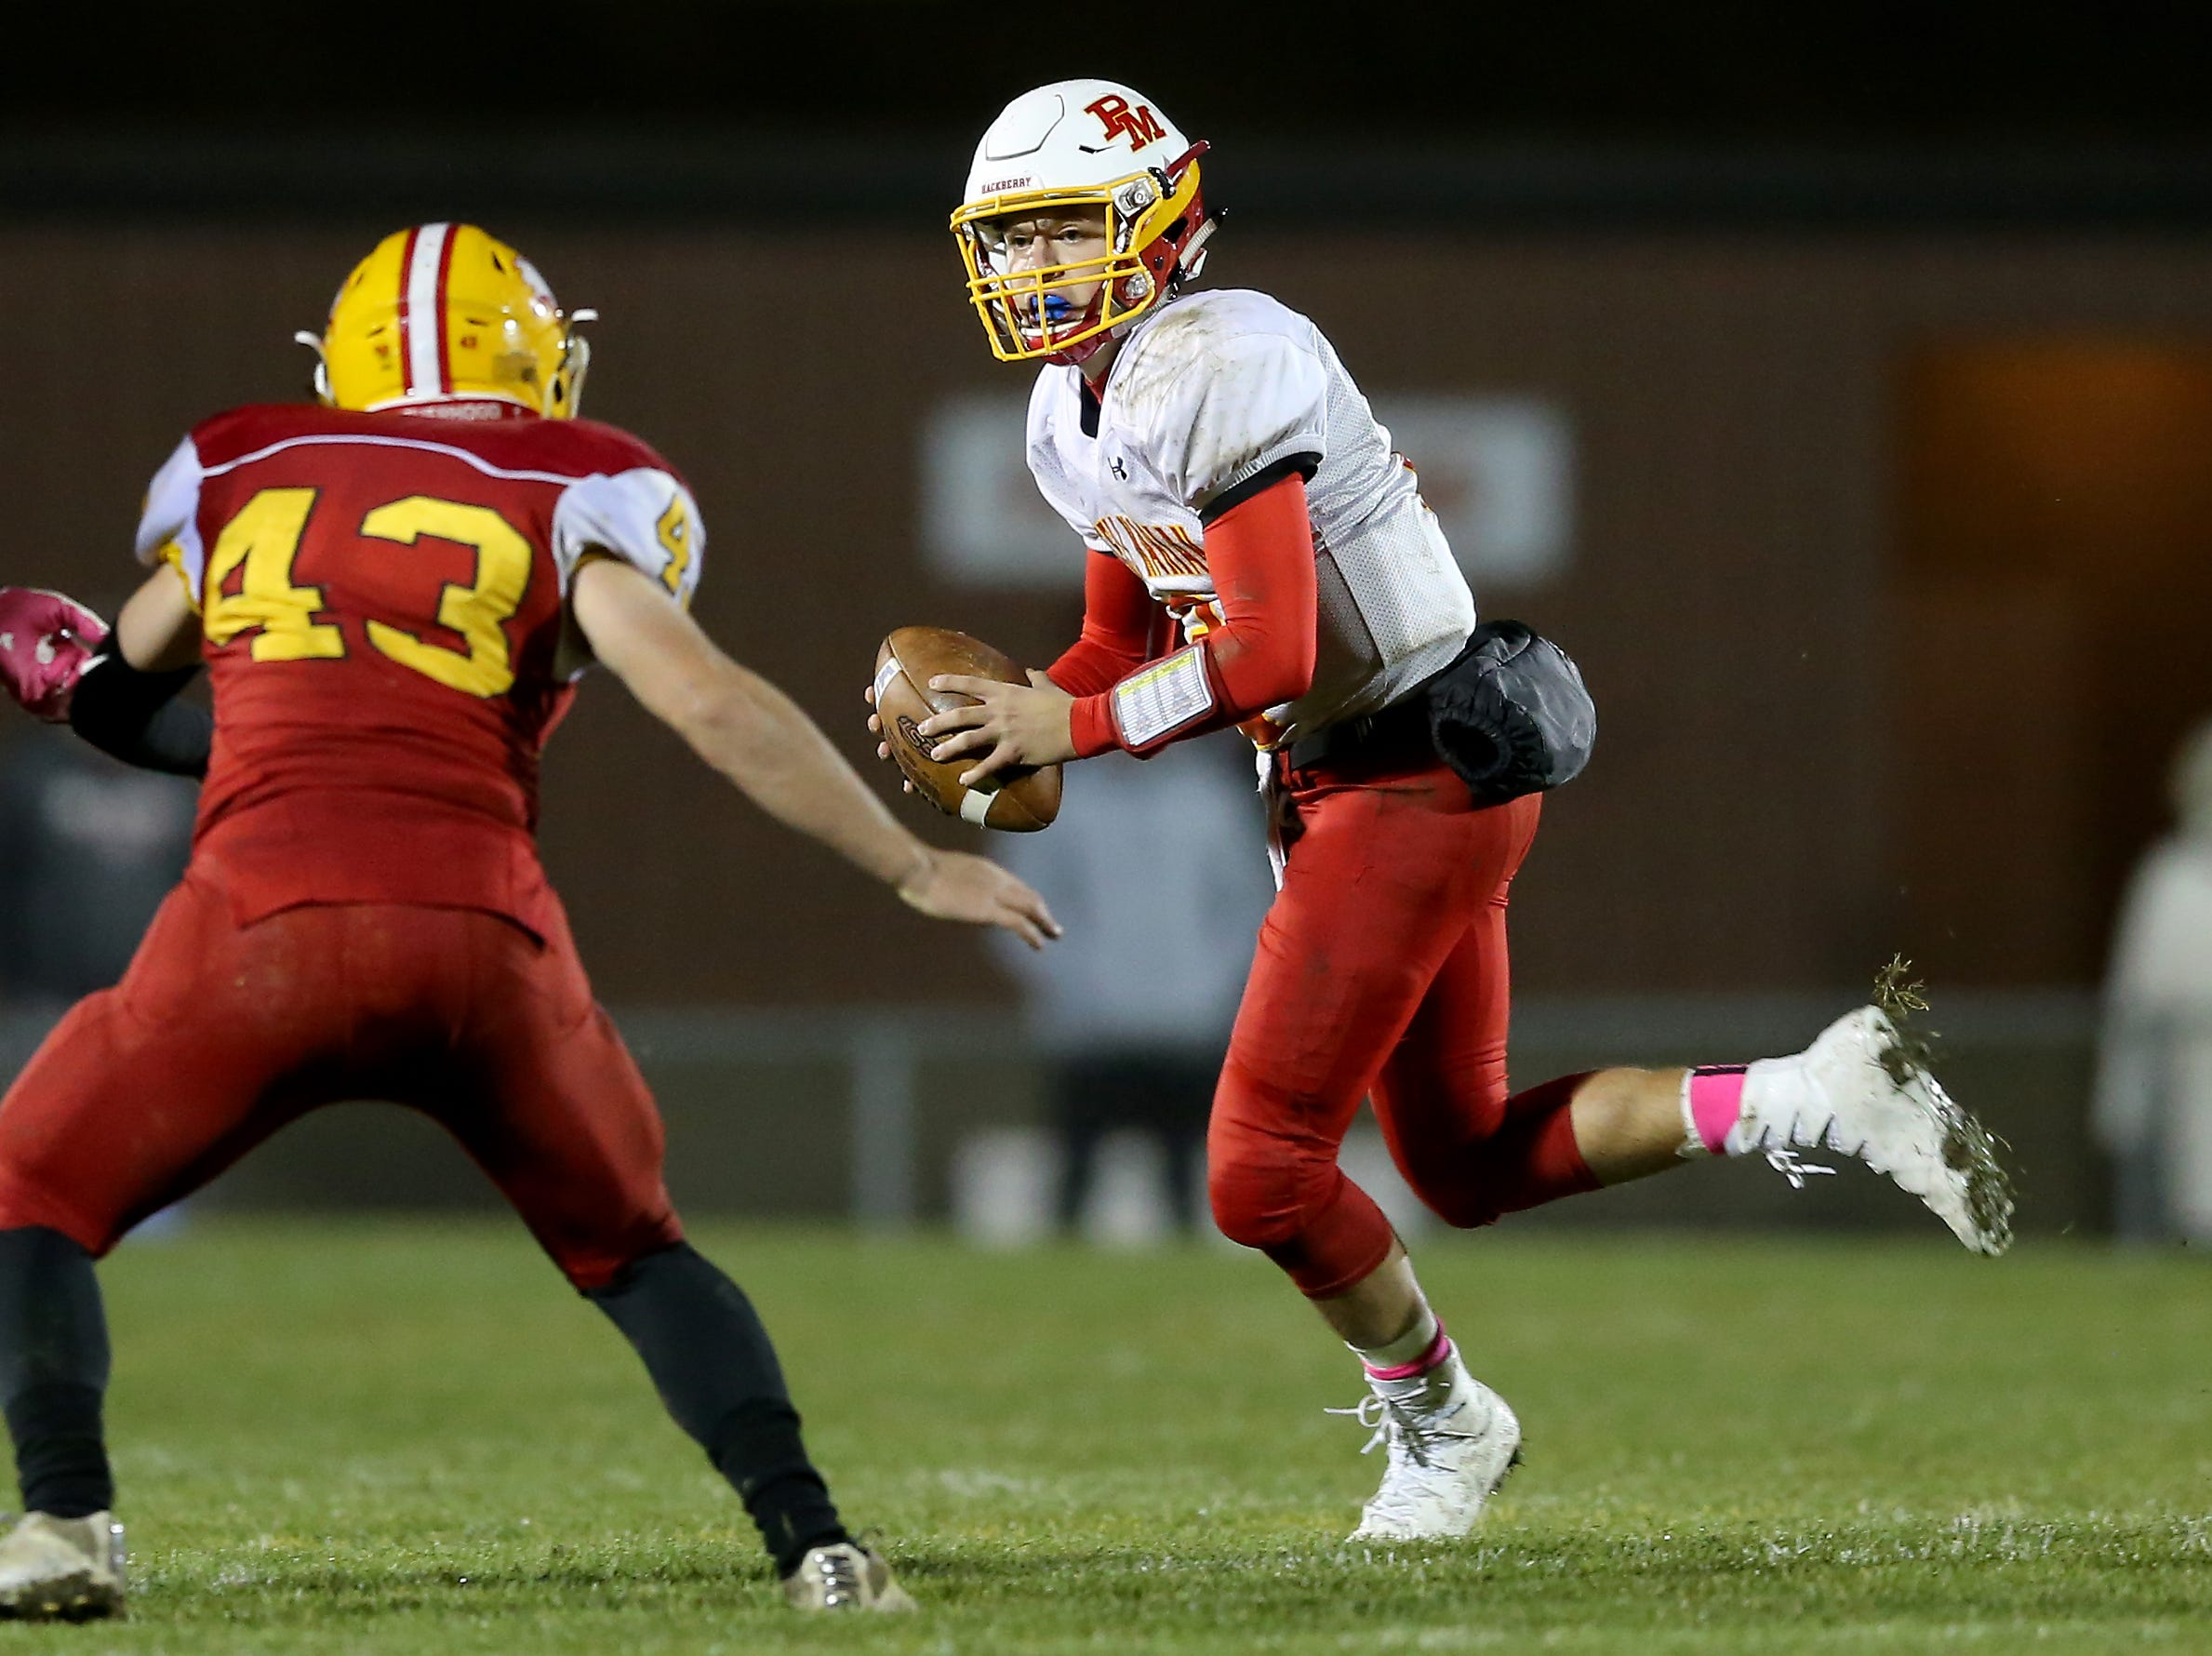 Purcell Marian quarterback Zach Hoover (12) rolls out of the pocket in the third quarter during a high school football game between Purcell Marian and Bishop Fenwick, Friday, Oct. 12, 2018, at Bishop Fenwick High School in Middletown, Ohio.